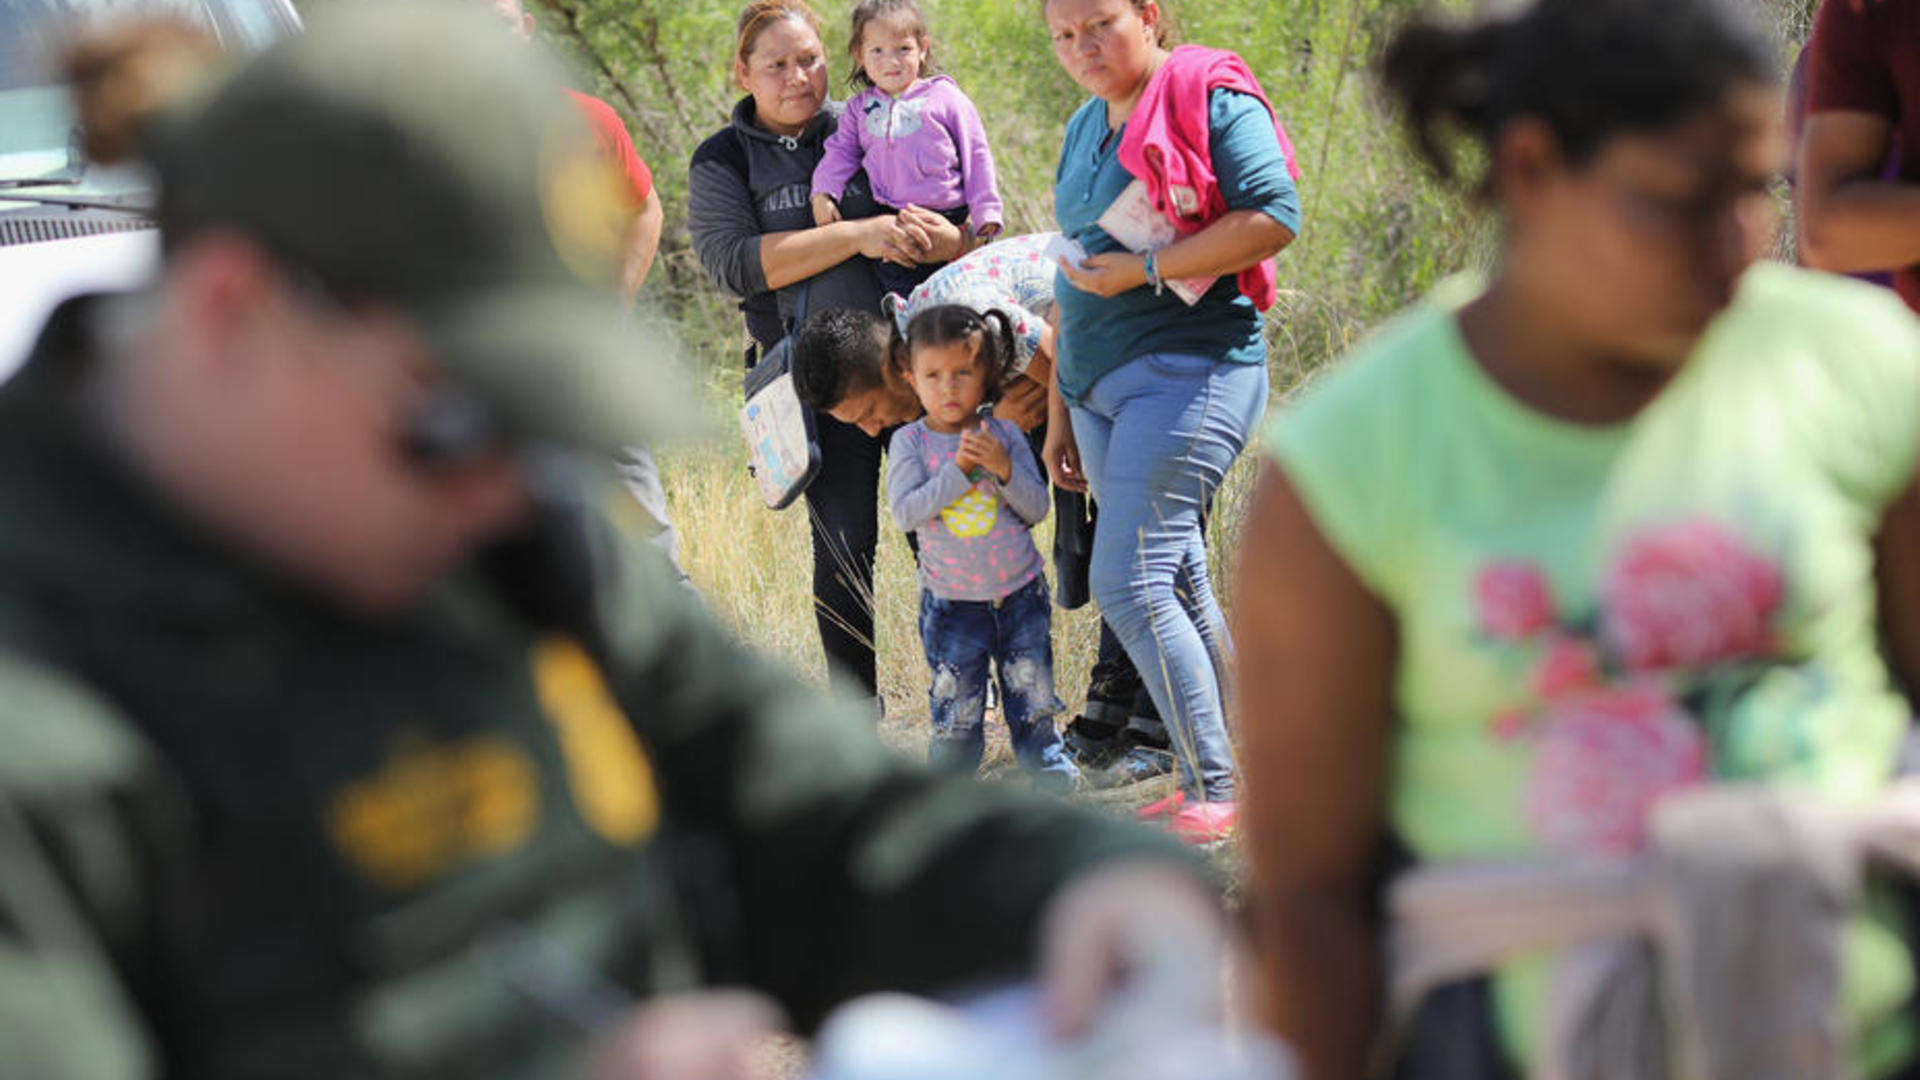 Families seeking asylum at the U.S.-Mexico border are detained